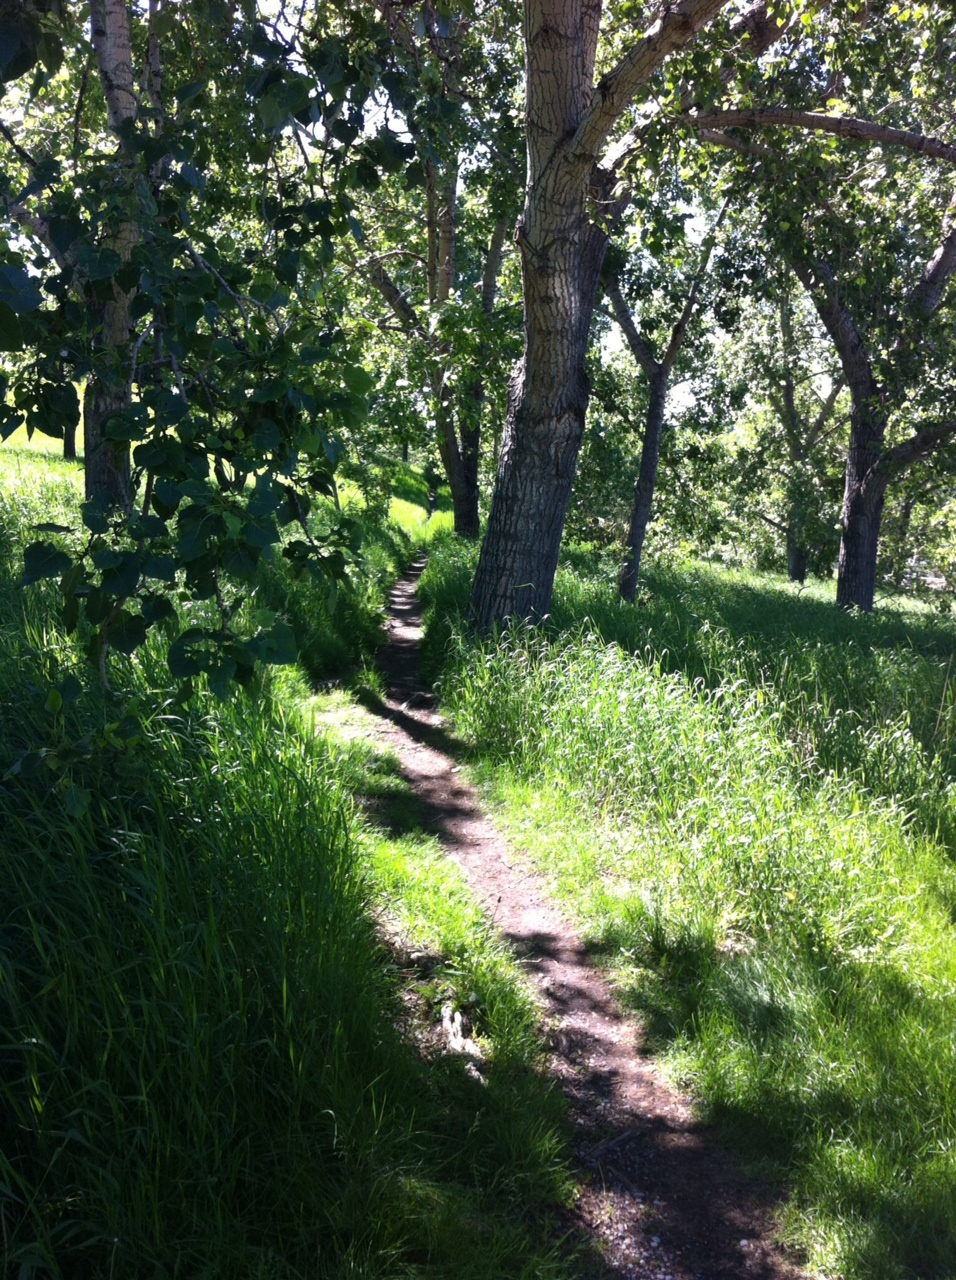 While parts of the Bow River north-side bluff walk are open offering spectacular views, other places are more forested and offering a more intimate and contemplative space.